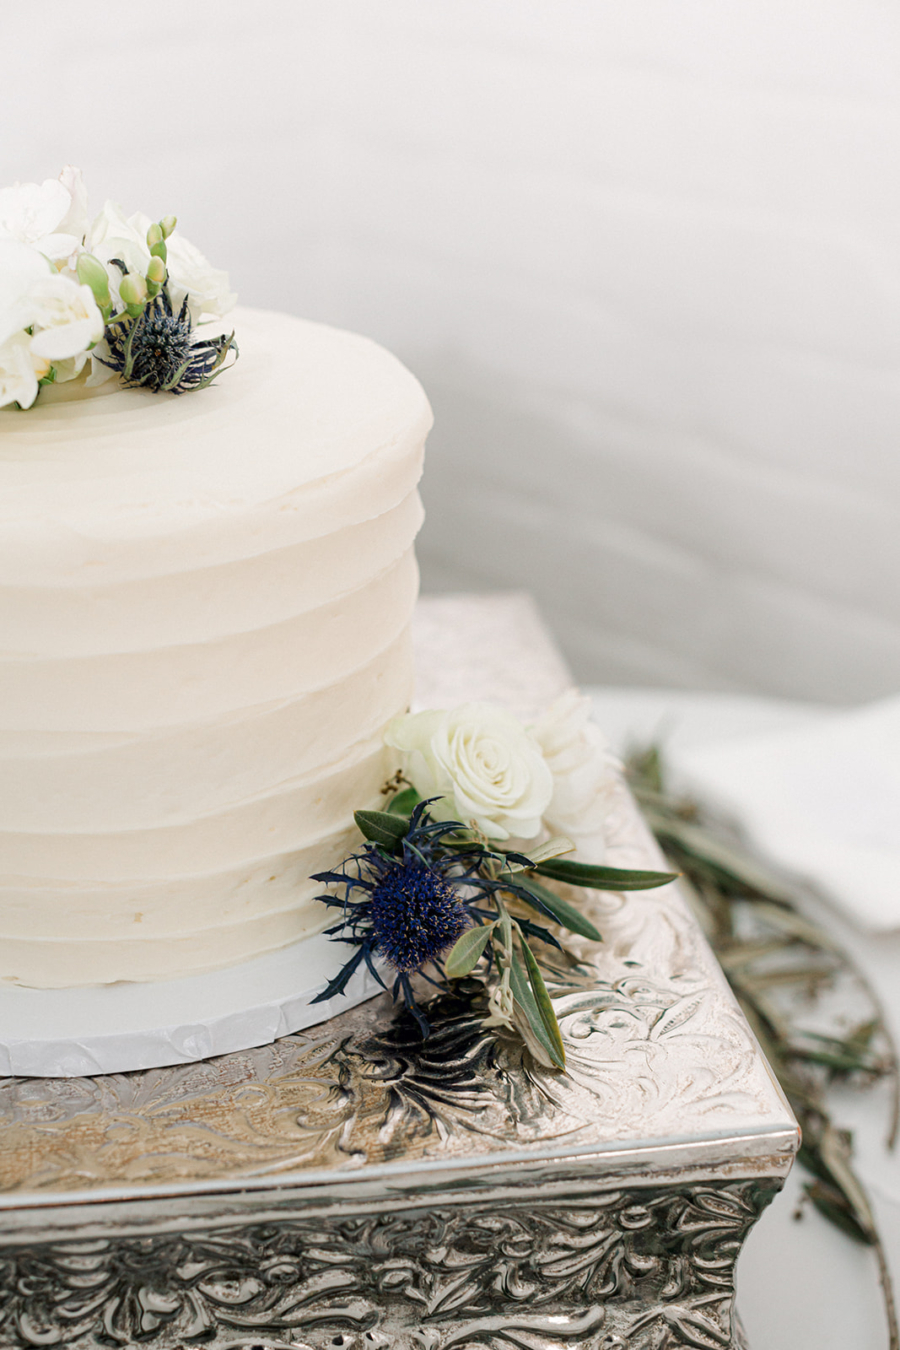 Simple white wedding cake with blue thistle flowers